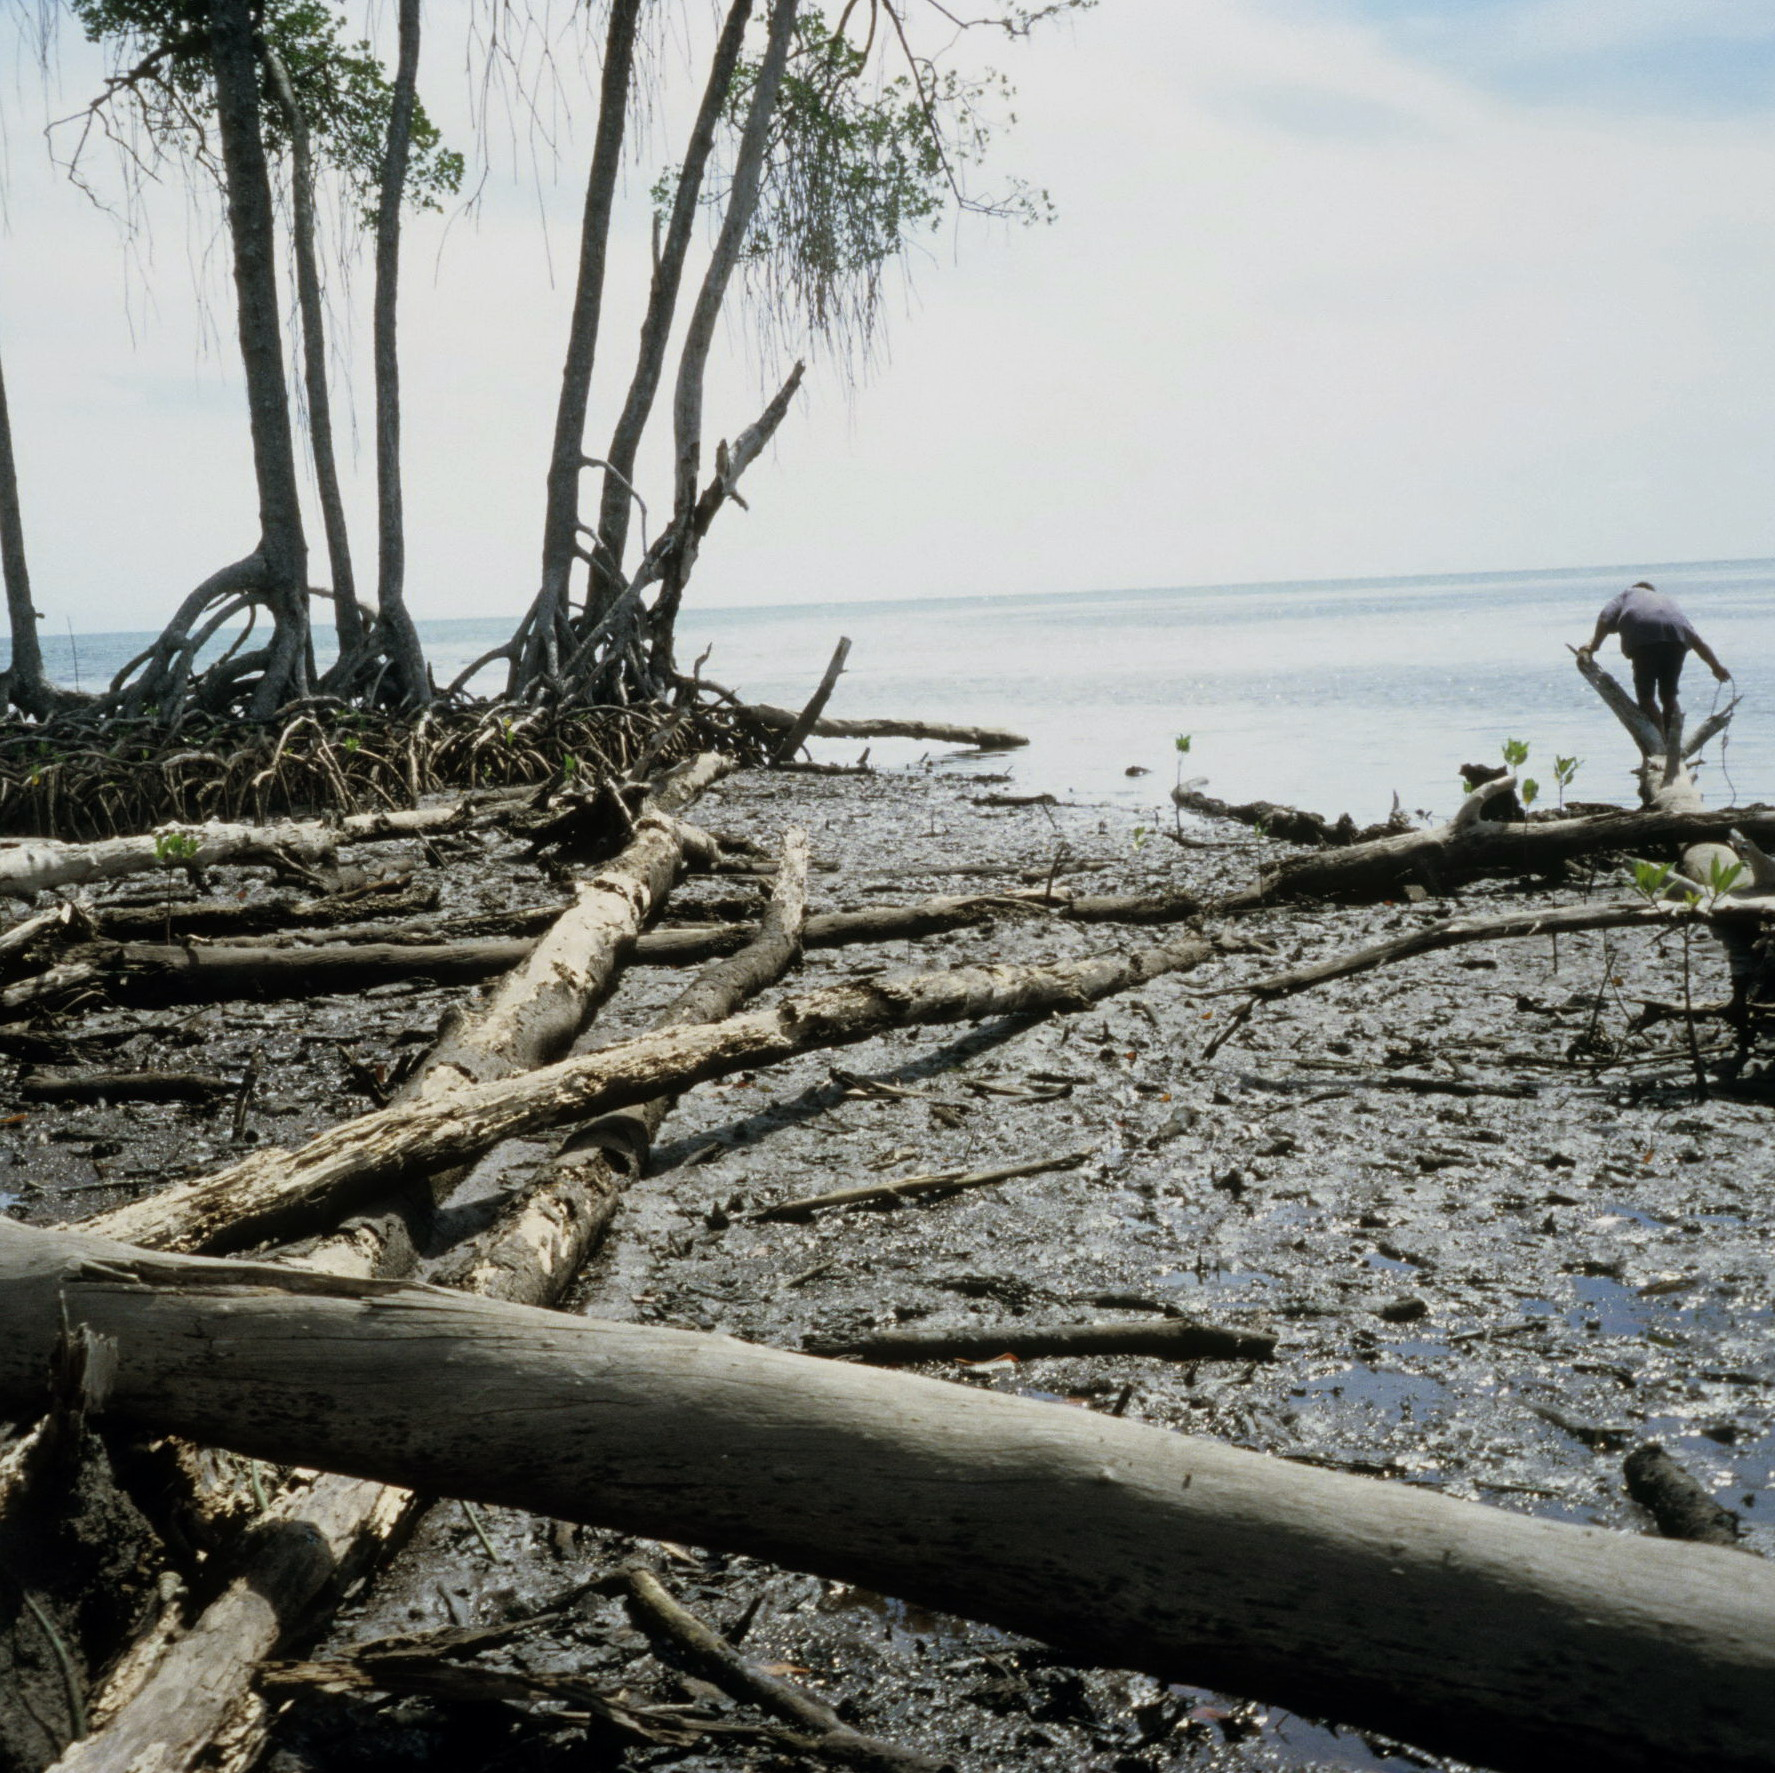 Papuan Gulf Mud and Mangroves, New Guinea Art, Oceanic Art, Tribal Art, South Pacific Art